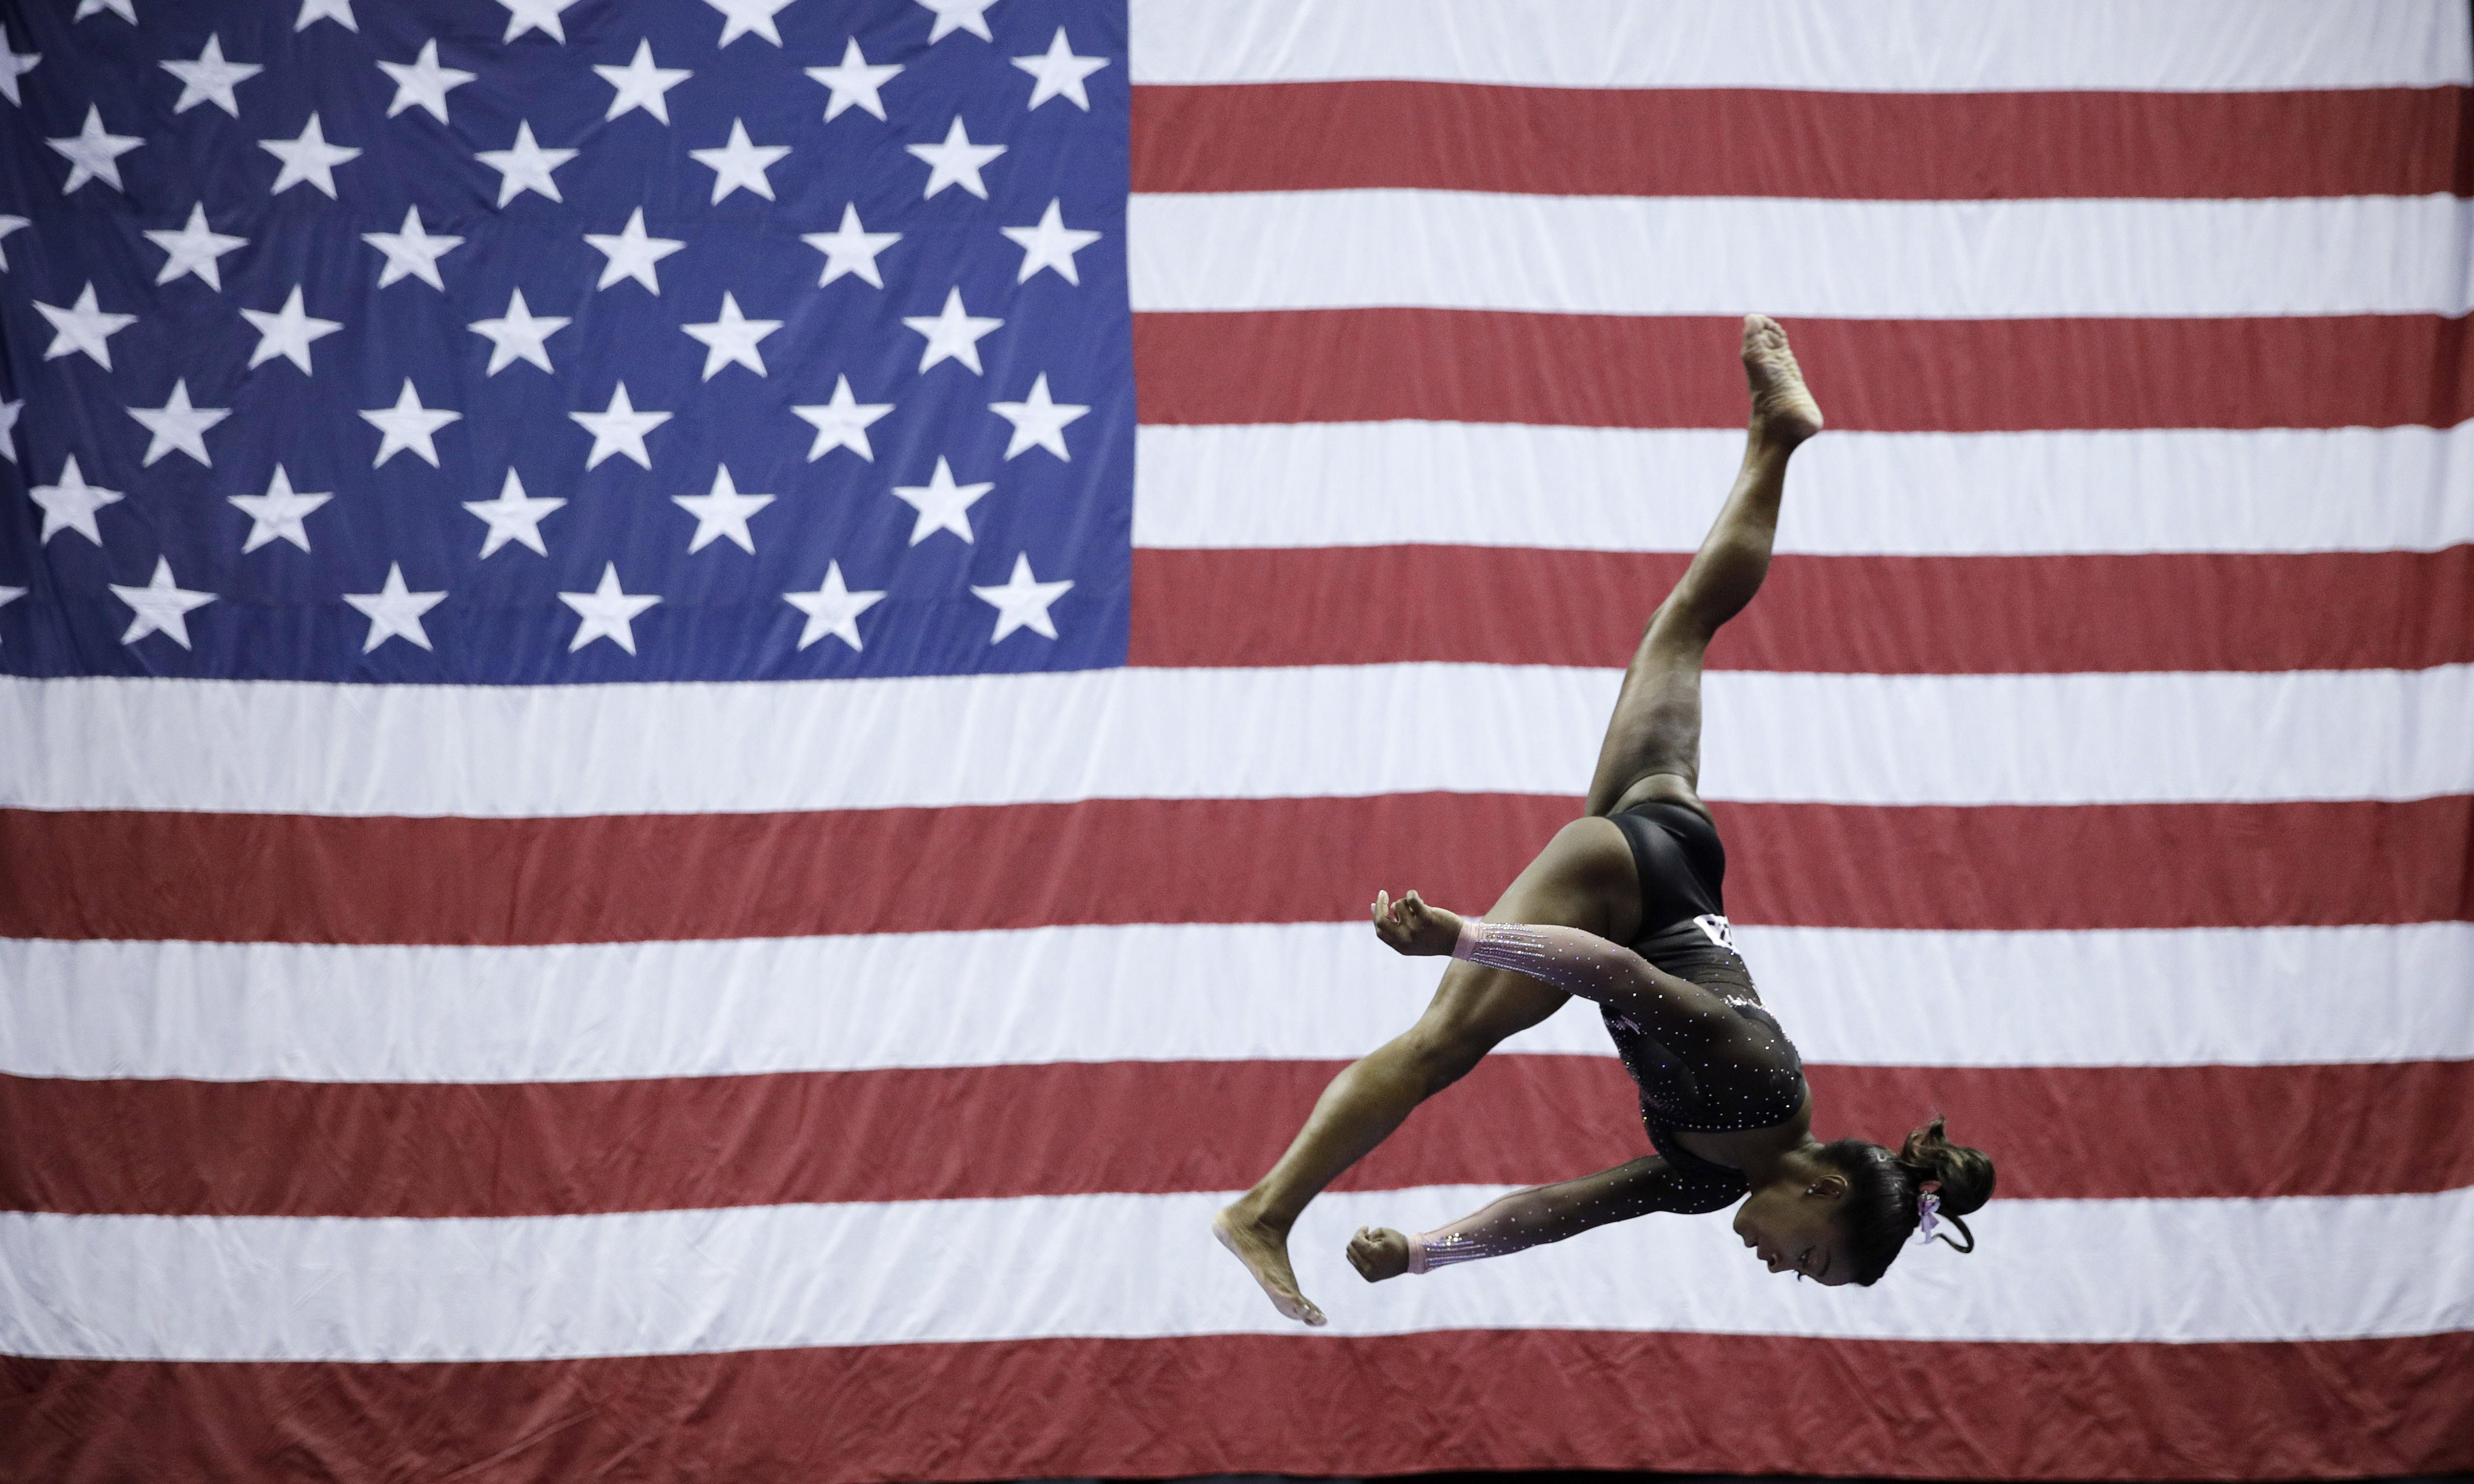 Simone Biles is redefining brilliance in a sport that shamefully failed her